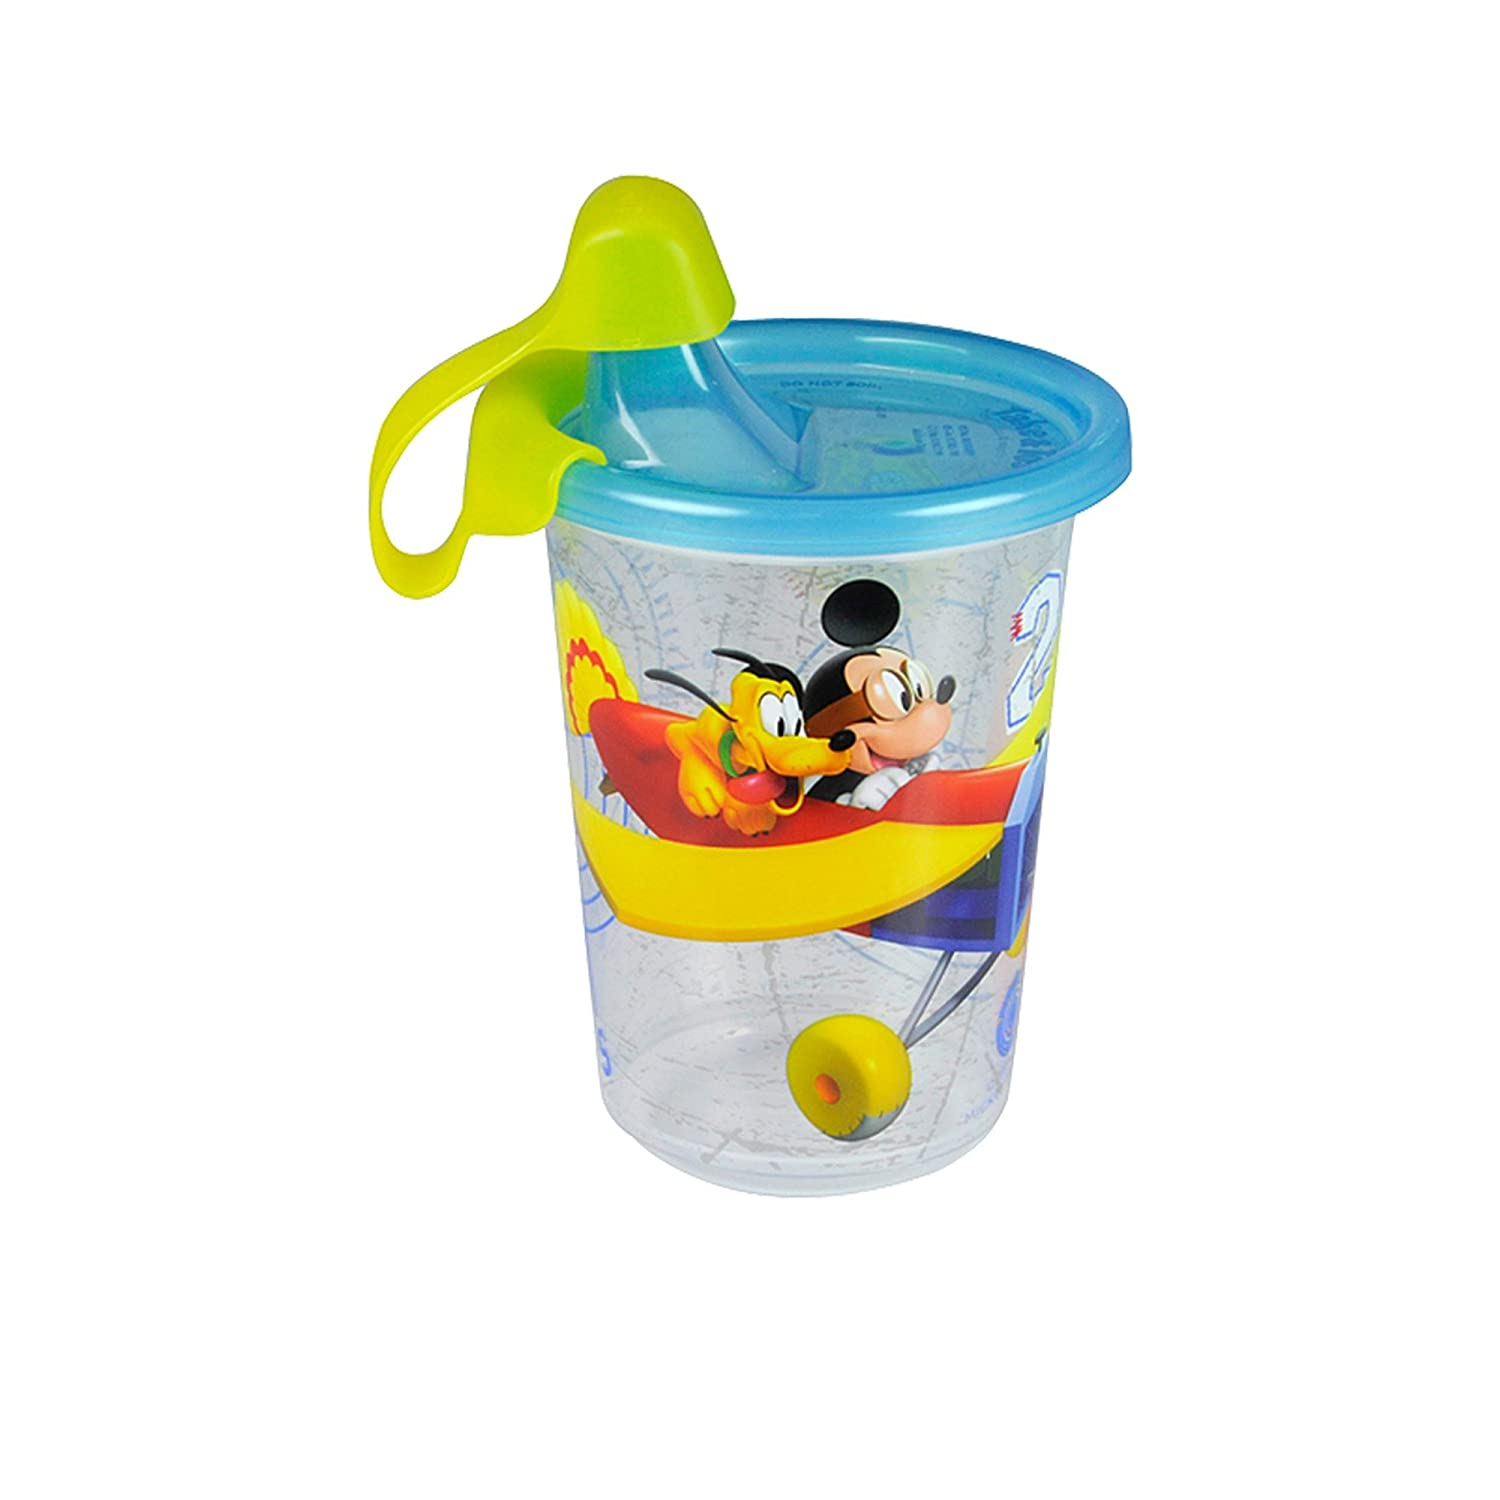 The First Years Disney 3 Piece Take & Toss Sippy Cups, Color/Characters May Vary